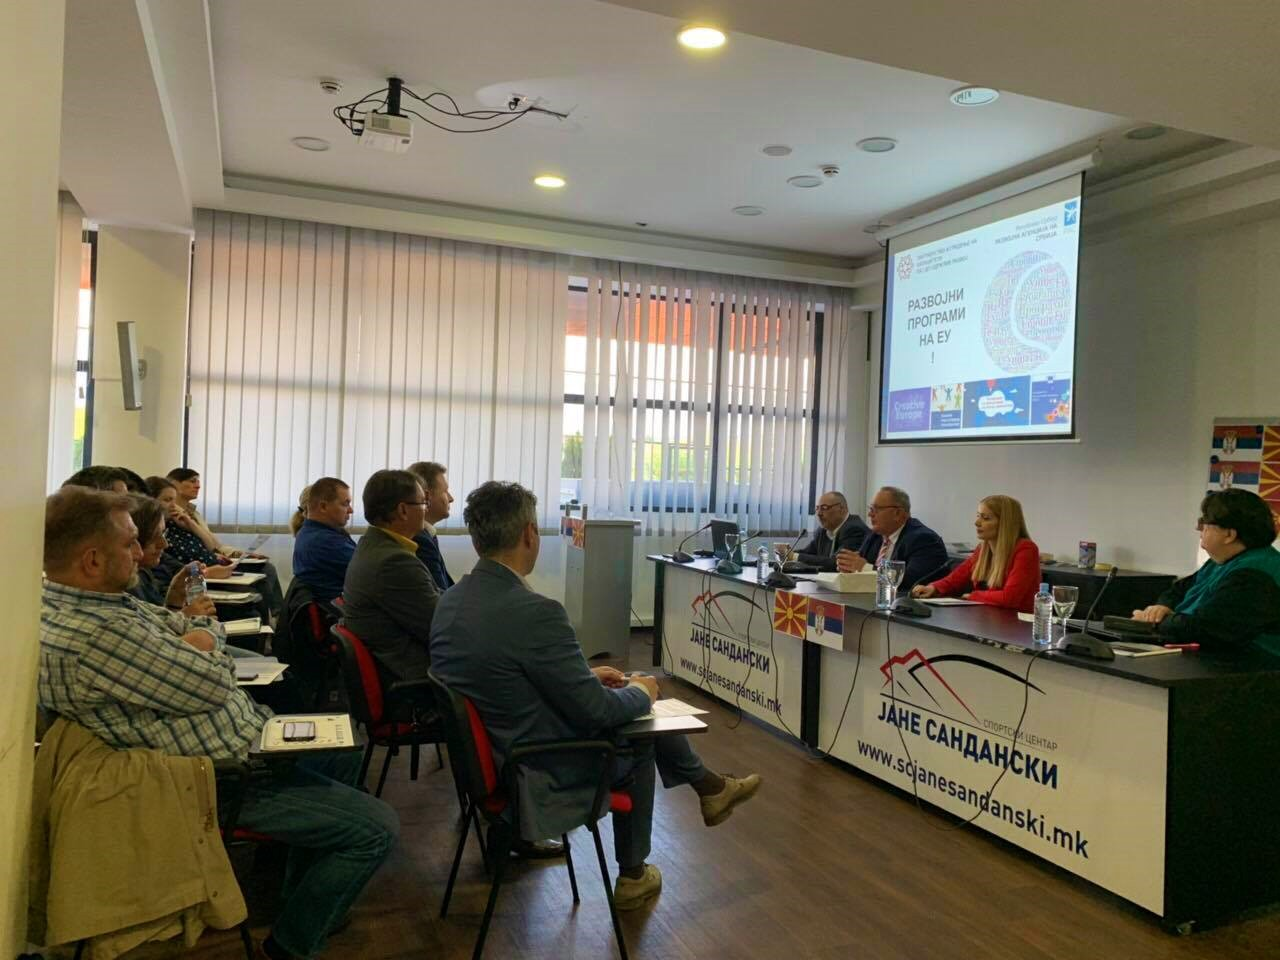 12 concrete concepts for cross-border projects as result of a two-day workshop in Skopje